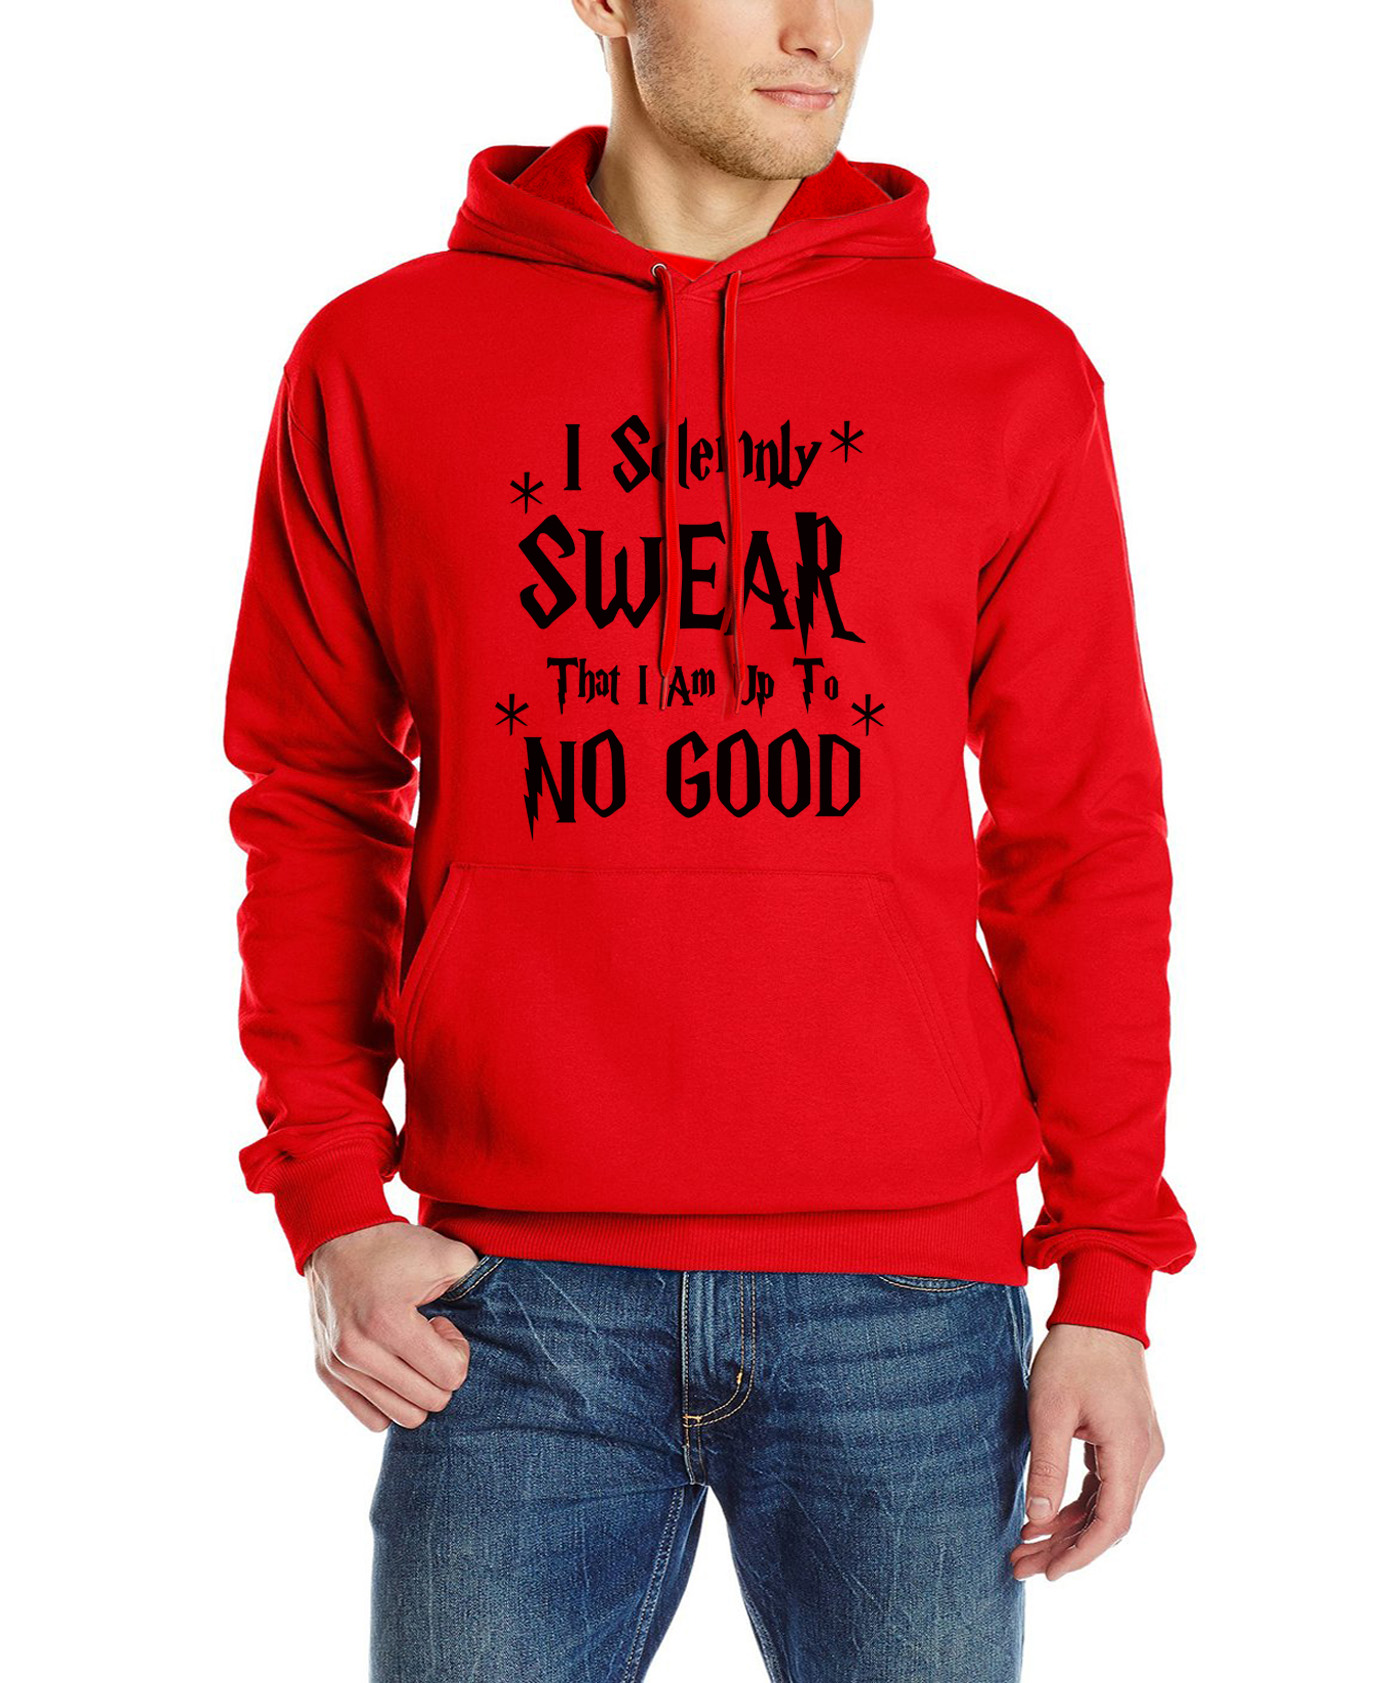 2017 autumn winter new style hoodies brand tracksuit I Solemnly Swear That I Am Up To No Good Funny letter print men sweatshirt